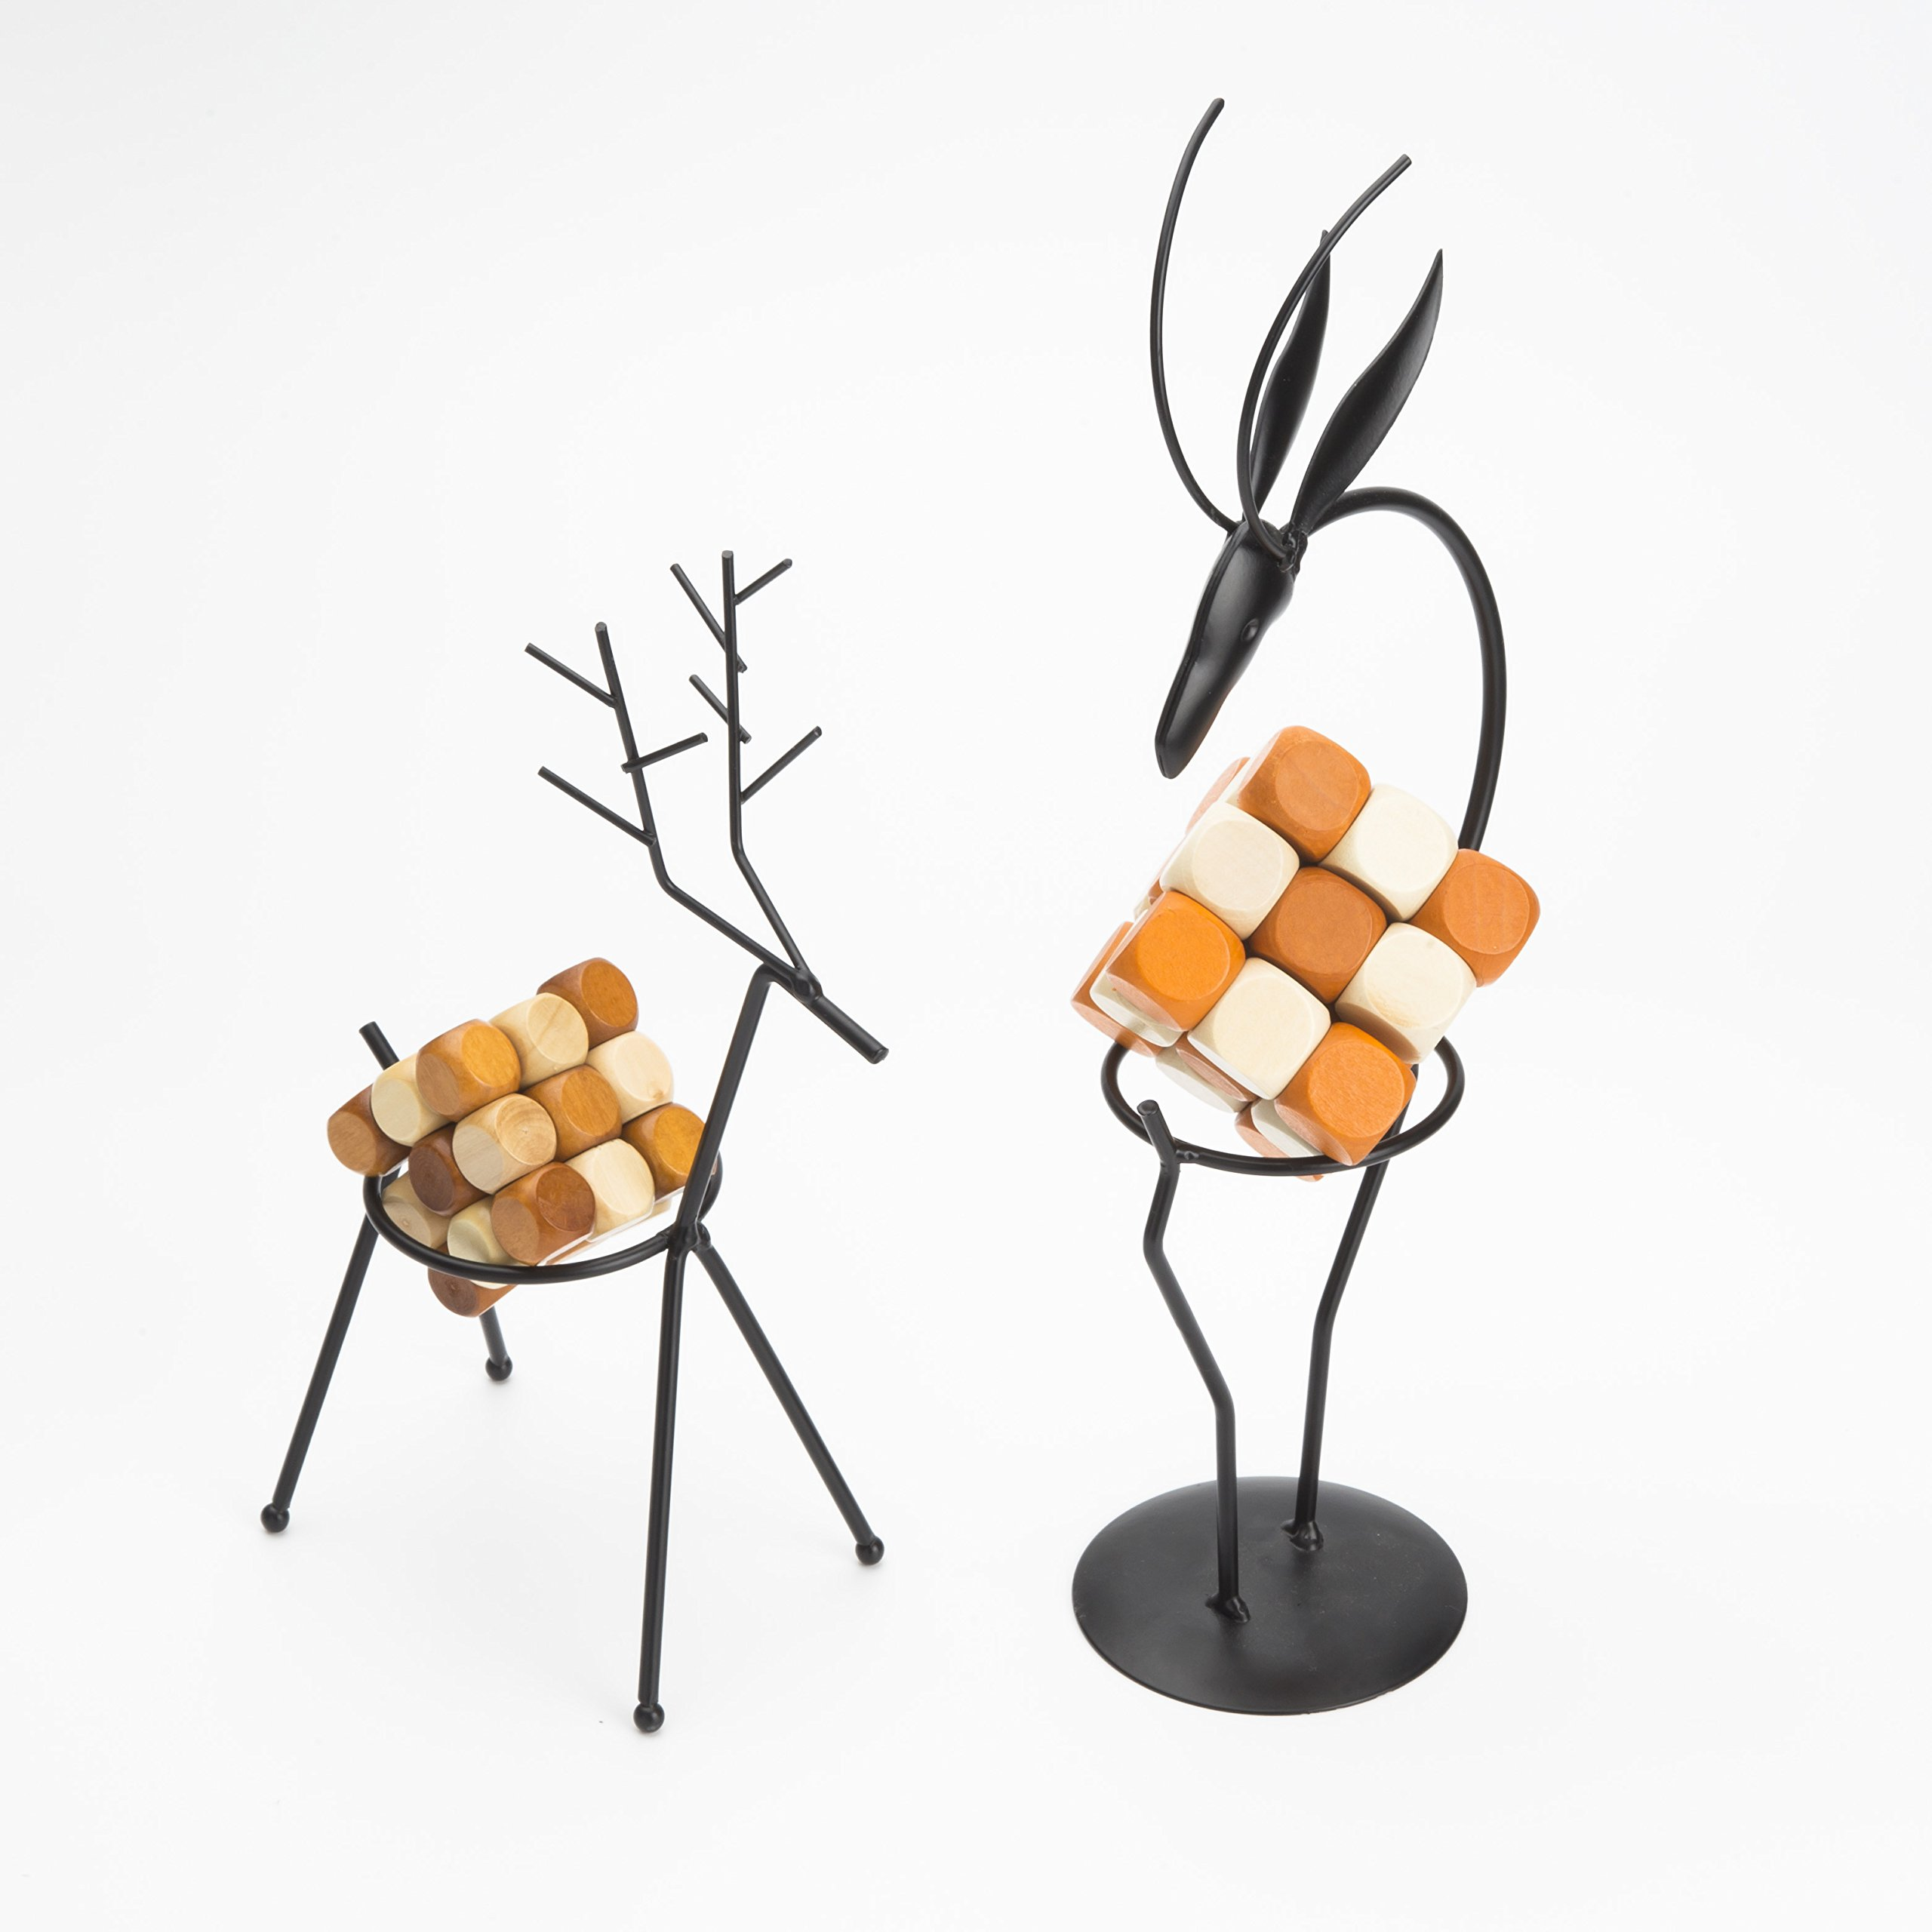 Metal Handicraft Stand Deer with European Elements Minimalist Design ,2 Pieces Deer and 2 Pieces ''Drgon Wagging Tail'' Brain Teaser Toys ,Best Gift for Kids/Adults by Like KongMing (Image #3)